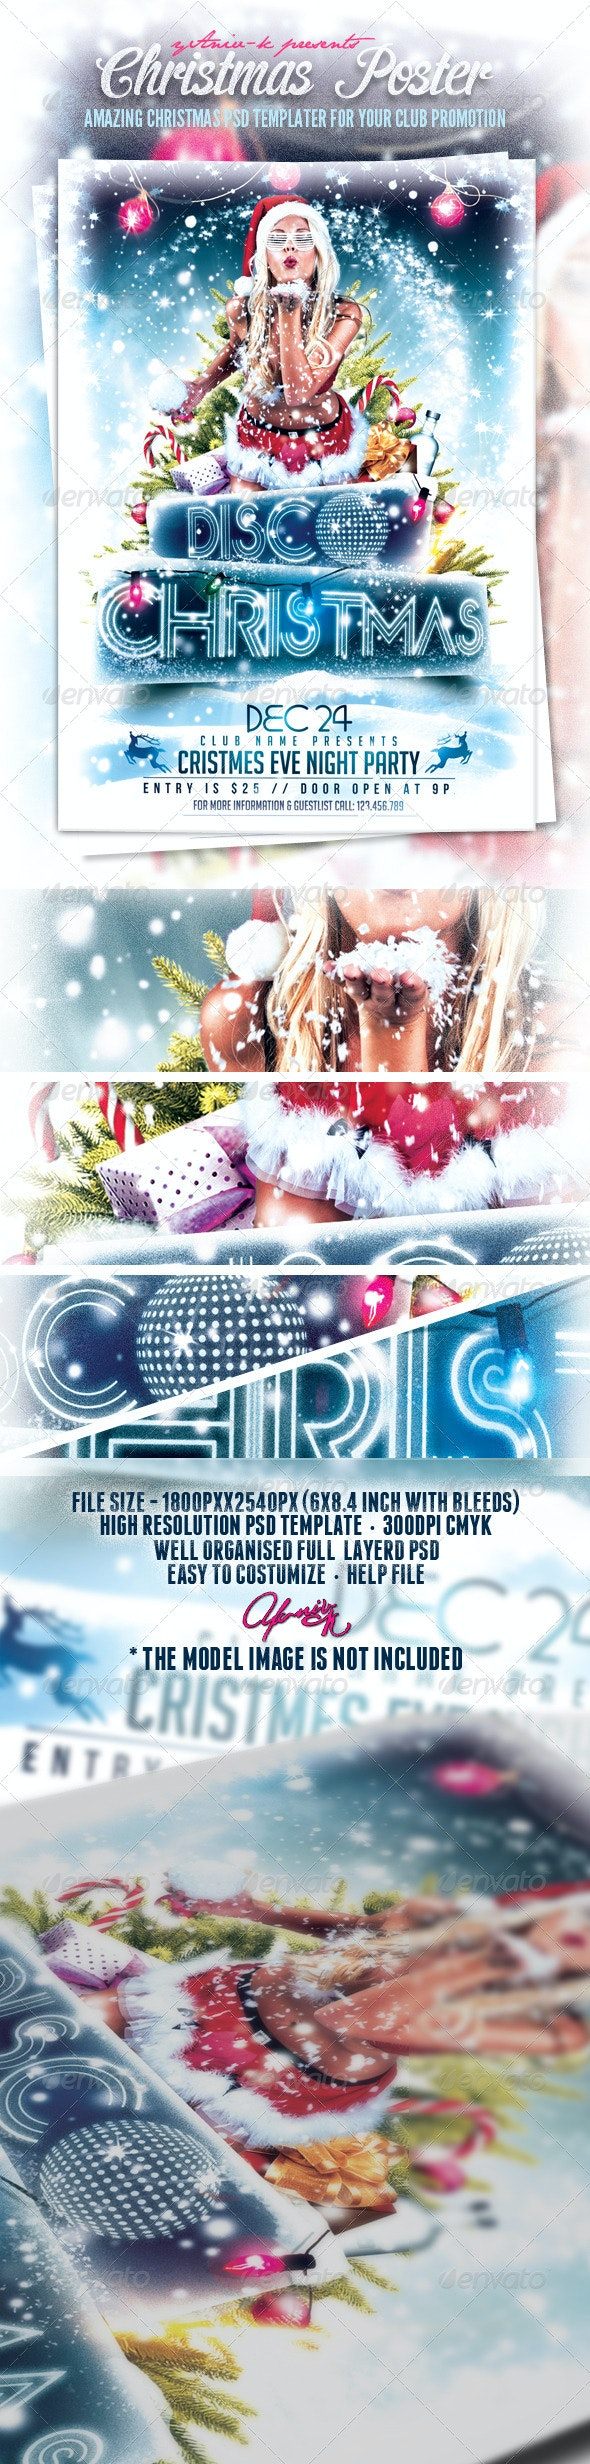 Christmas Event Flyer Template - Flyers Print Templates